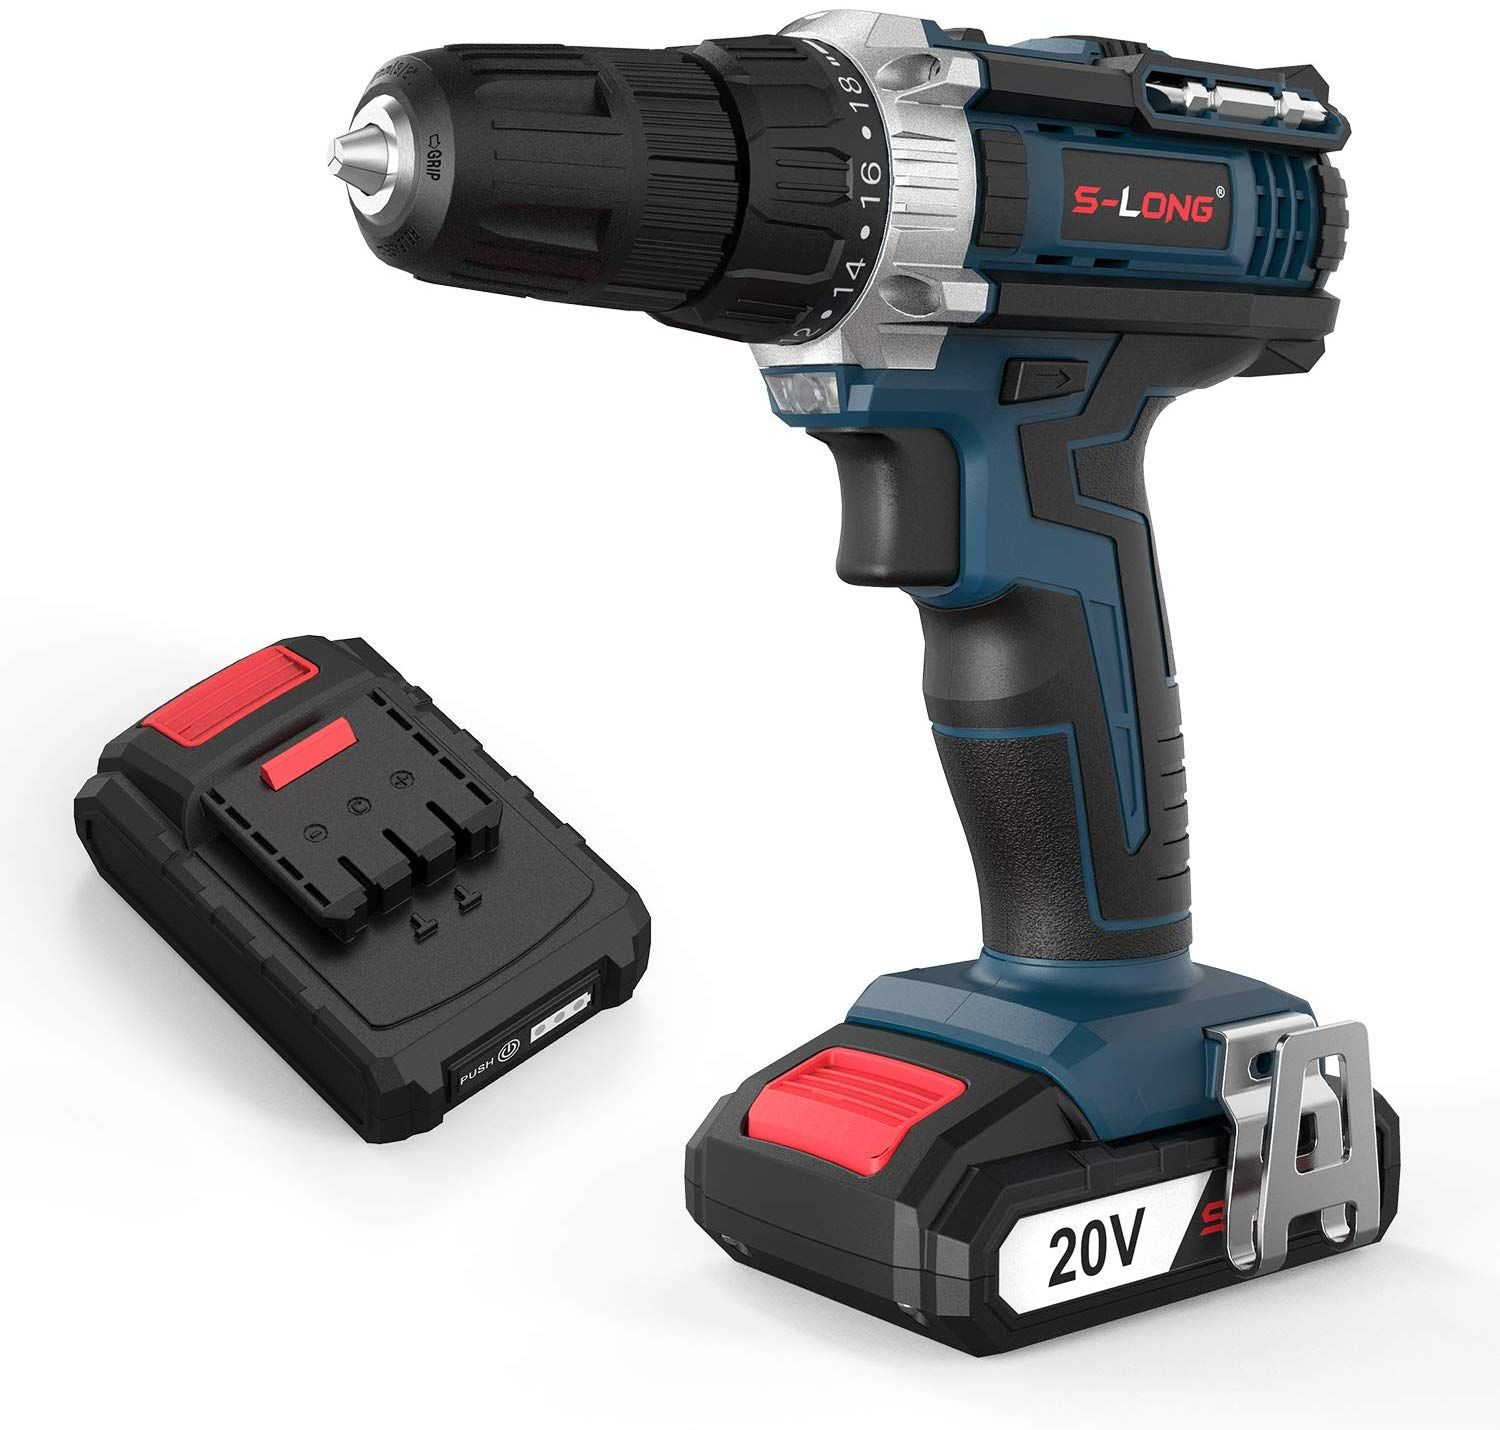 S Long 20v Cordless Drill Driver Set Power Drill 3 8 With 2 Batteries And Charger Led Bits In 2020 Cordless Drill Drill Driver Cordless Impact Drill